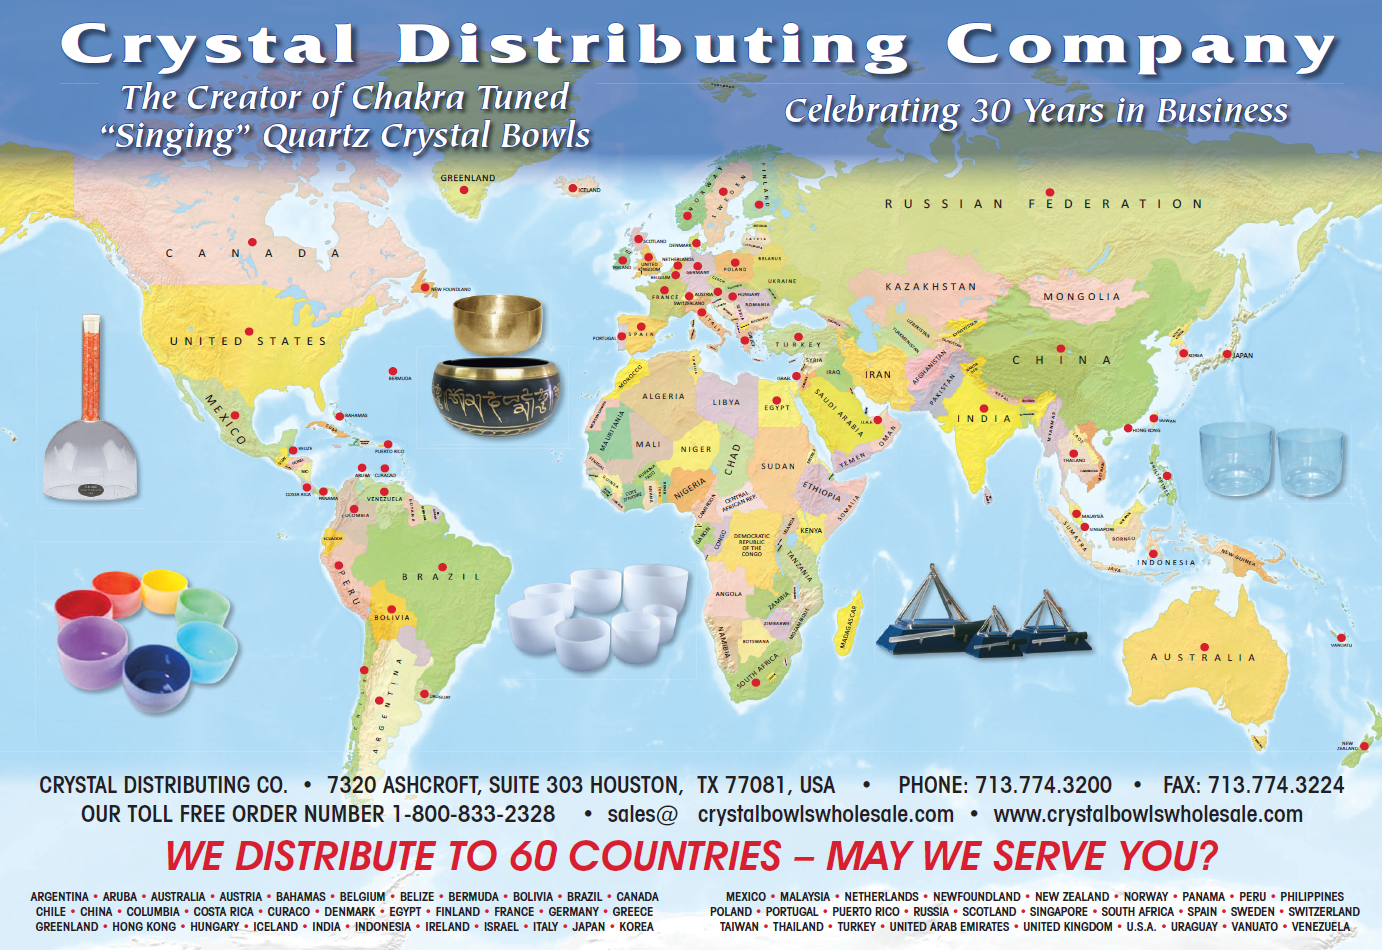 Crystal-Distributing-Company-World-Wide-Distribution-Crystal-Bowls